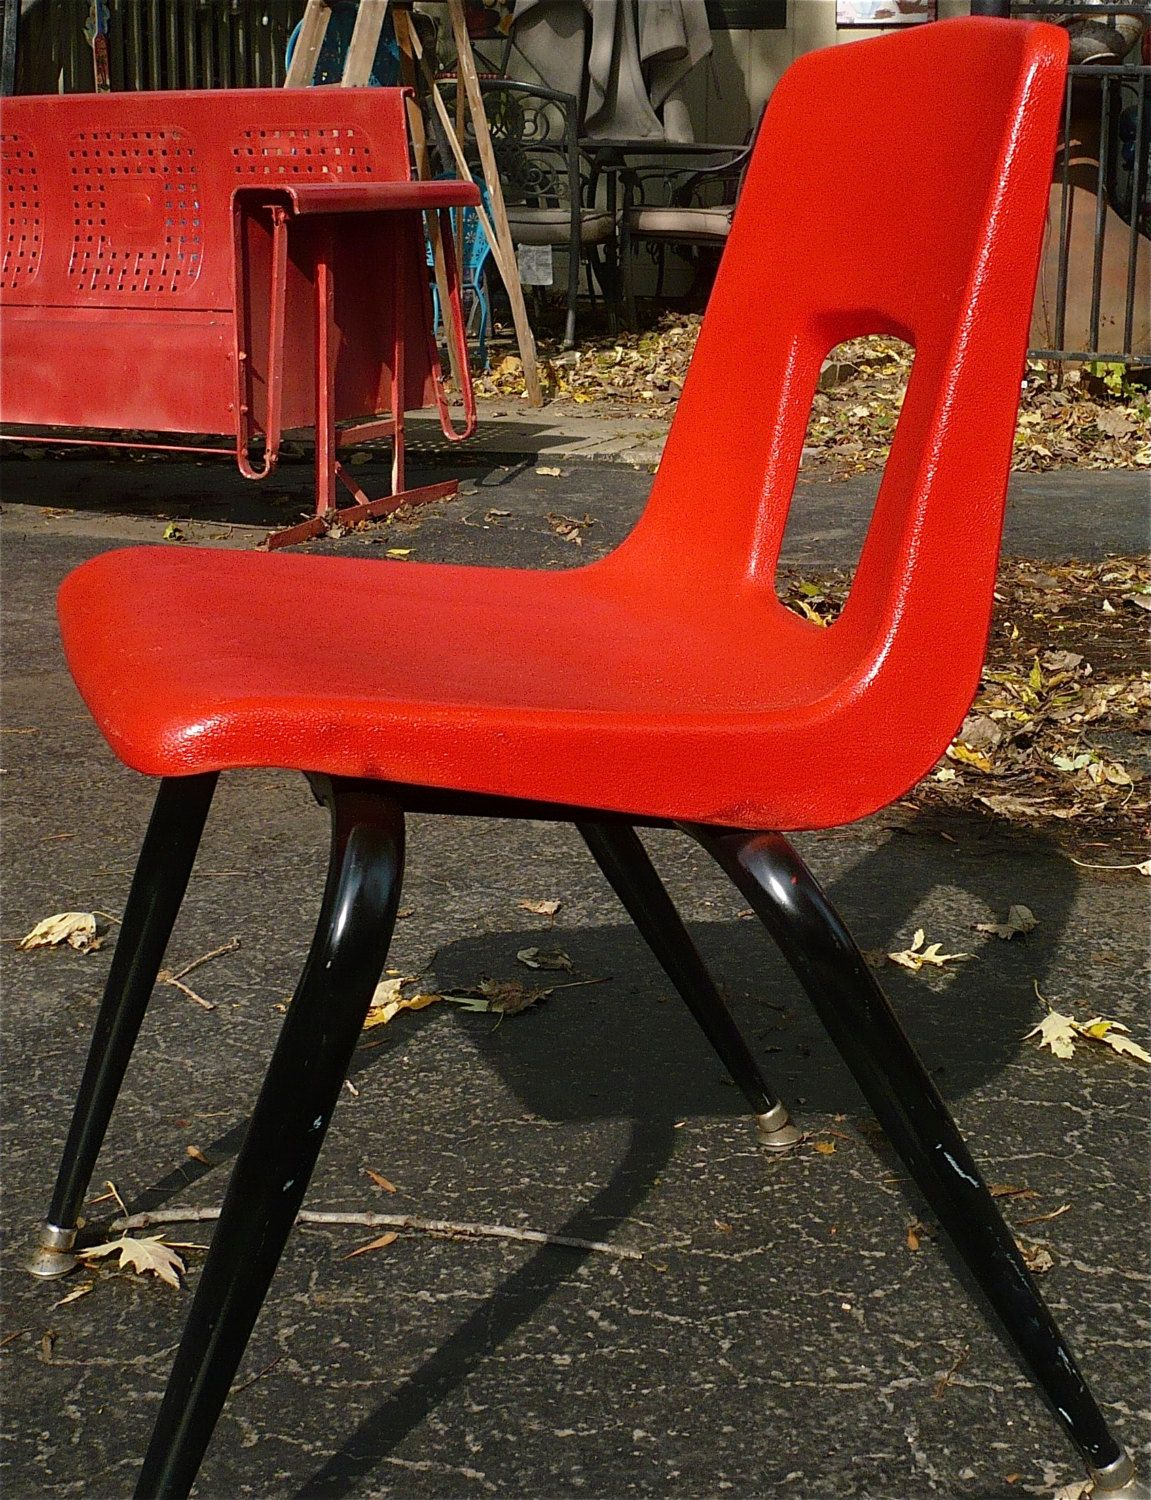 artco bell chairs chair yoga sequence retro mcm red mid century childs vintage furniture children plastic by